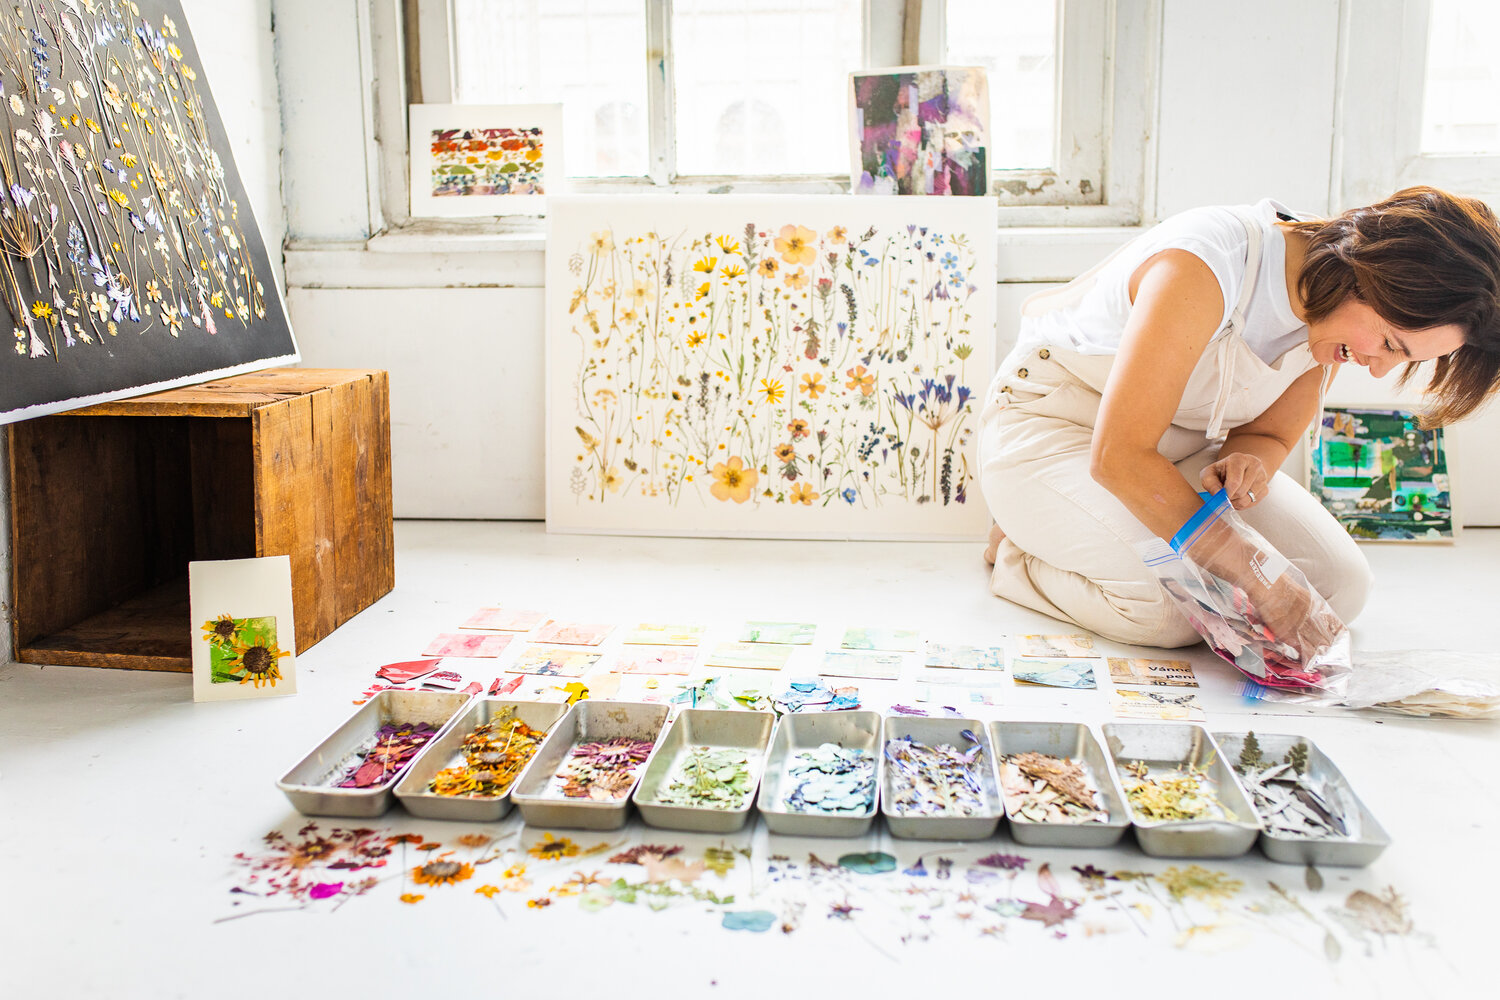 Tricia Paoluccio sits in front of pressed flowers in color coded trays in a light-filled room